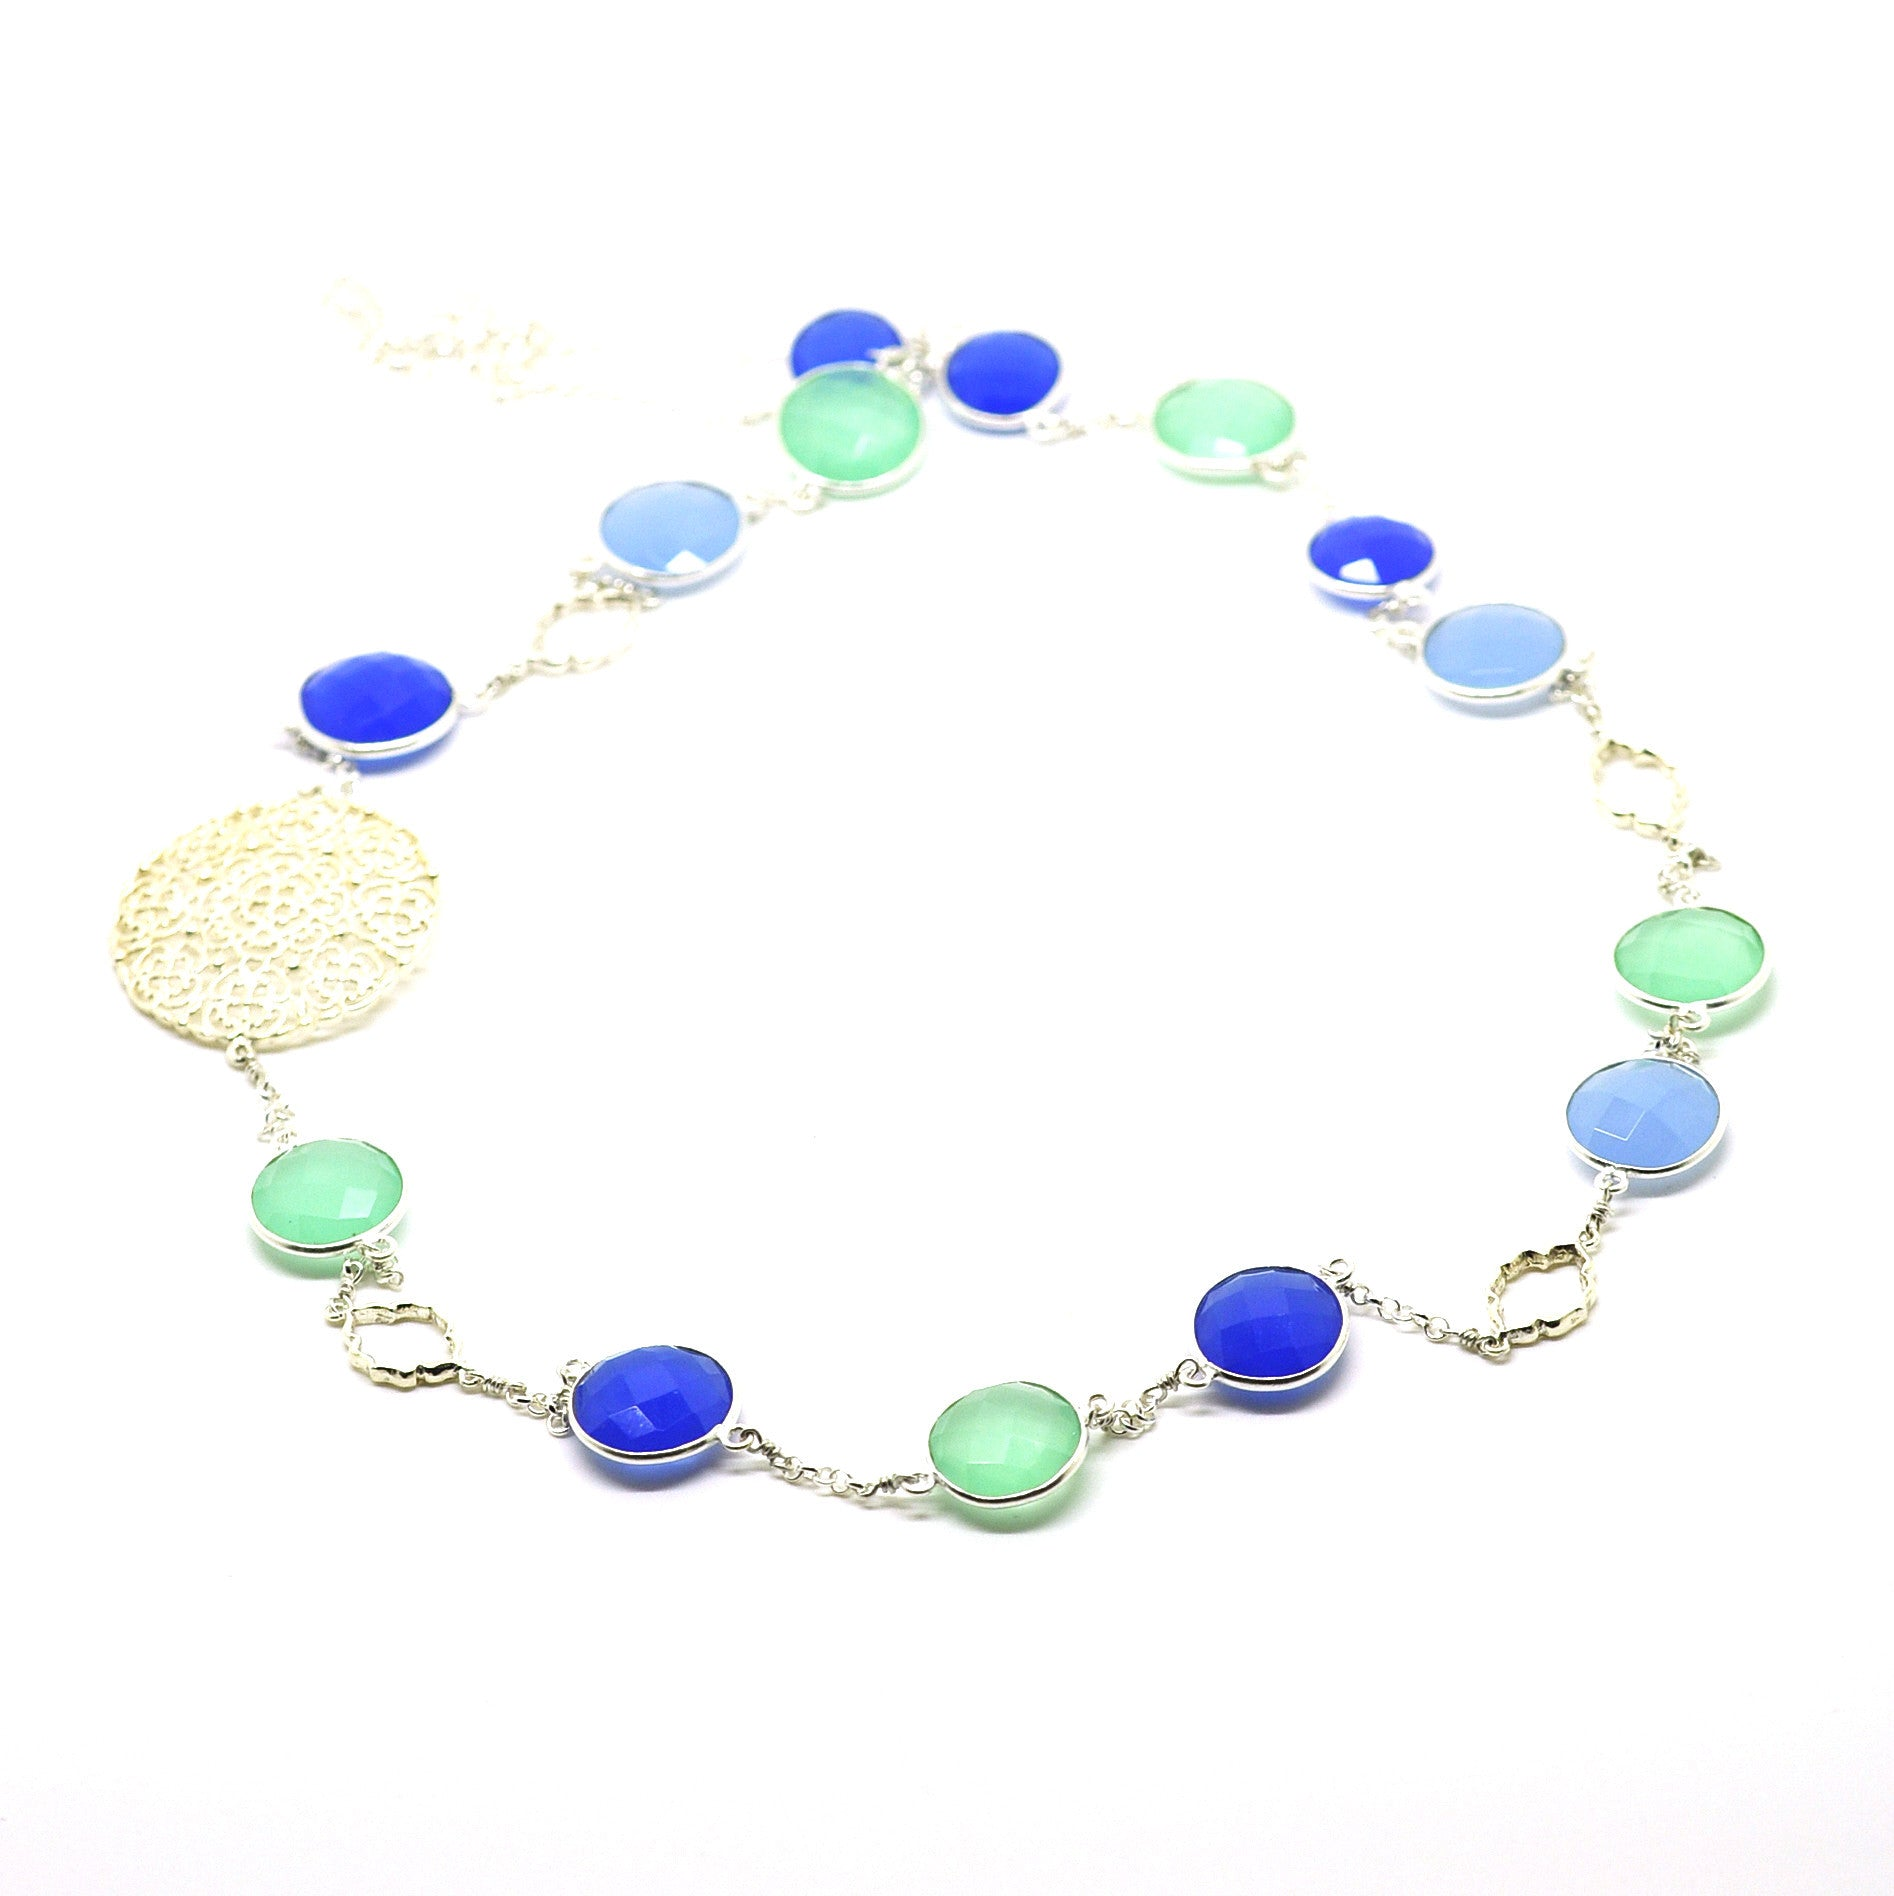 SOLD - ON SALE Gemstone necklace 3 (clearance price)